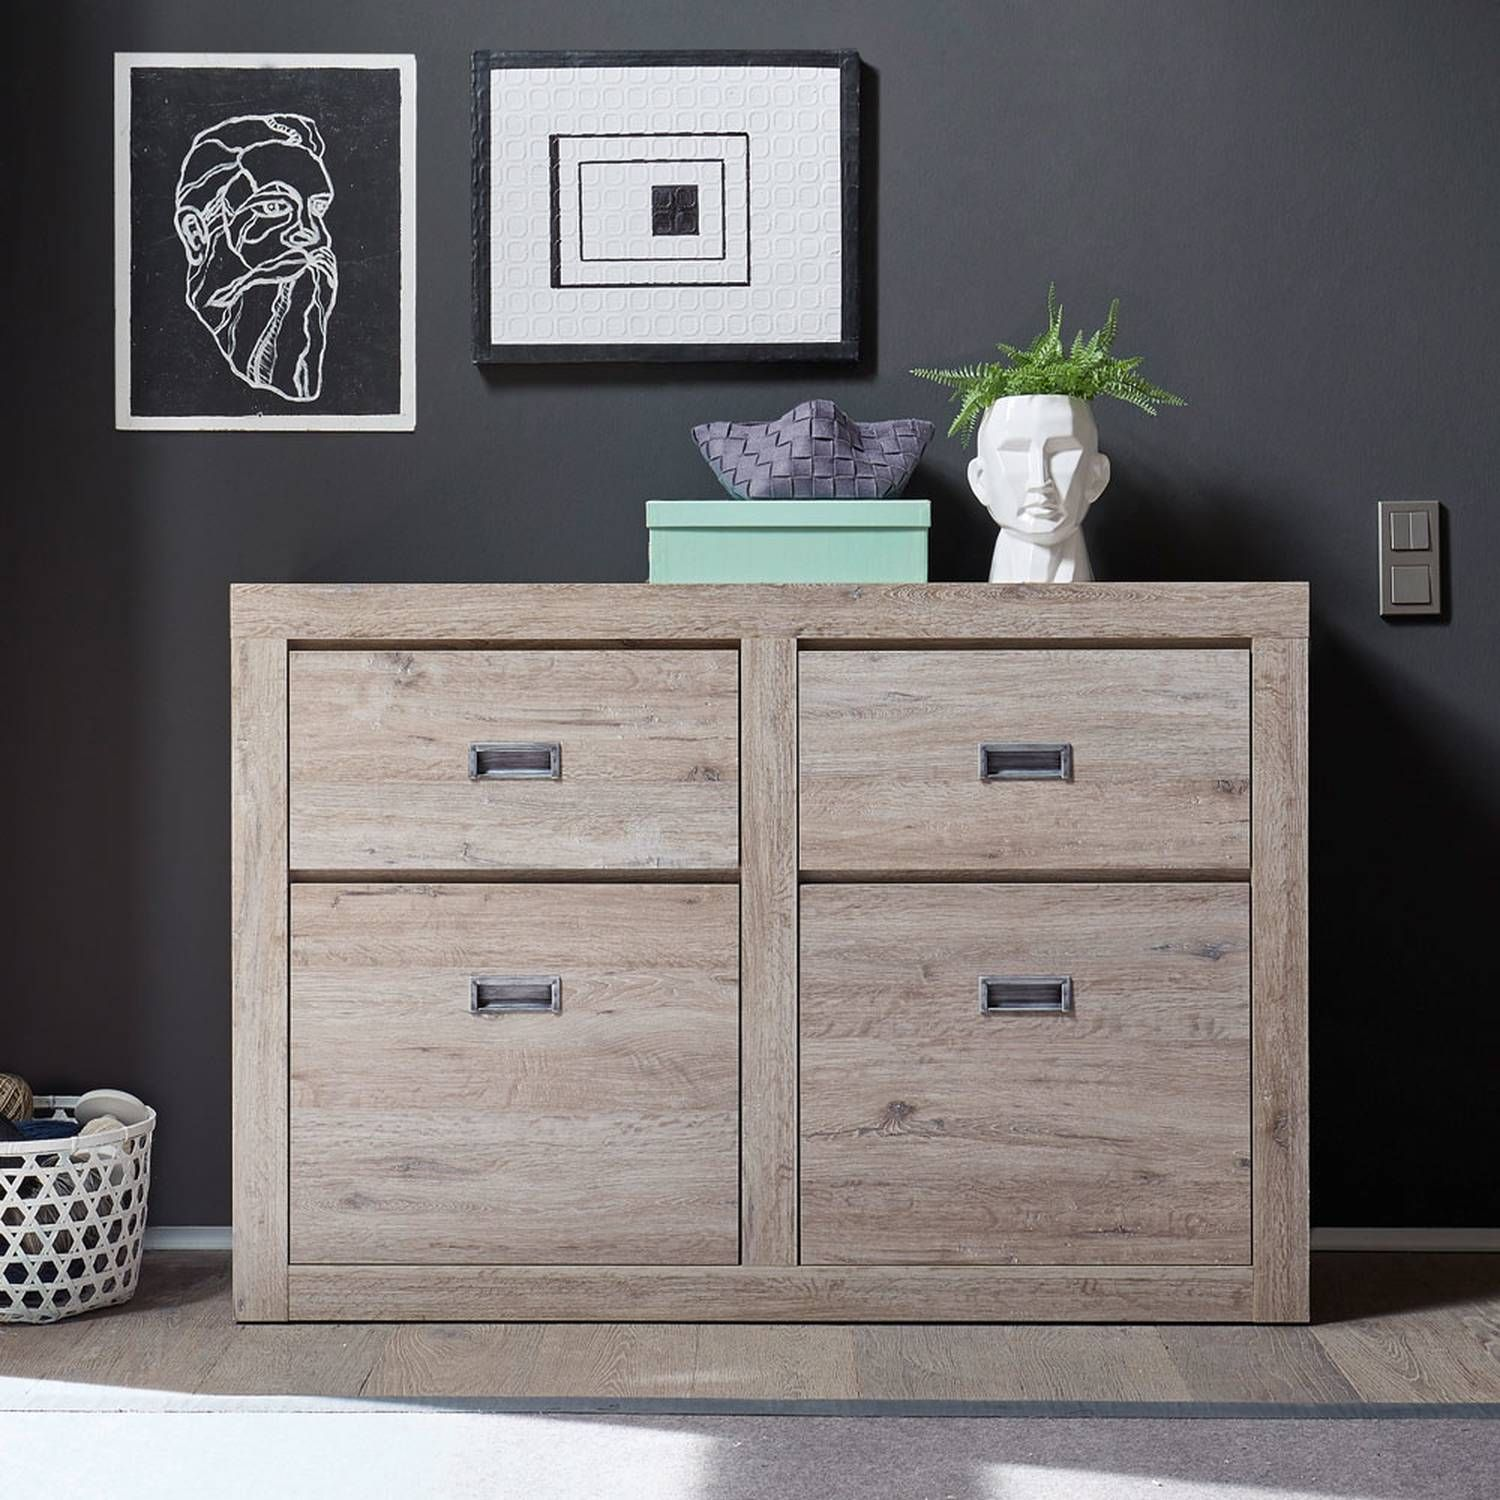 Modern Eckkommode Gunstige Sideboards Auf Rechnung Sideboard Furniture For Sale Sideboard Weiss Buche Kommode Weiss In 2020 Sideboard Wohnzimmerschranke Kommode